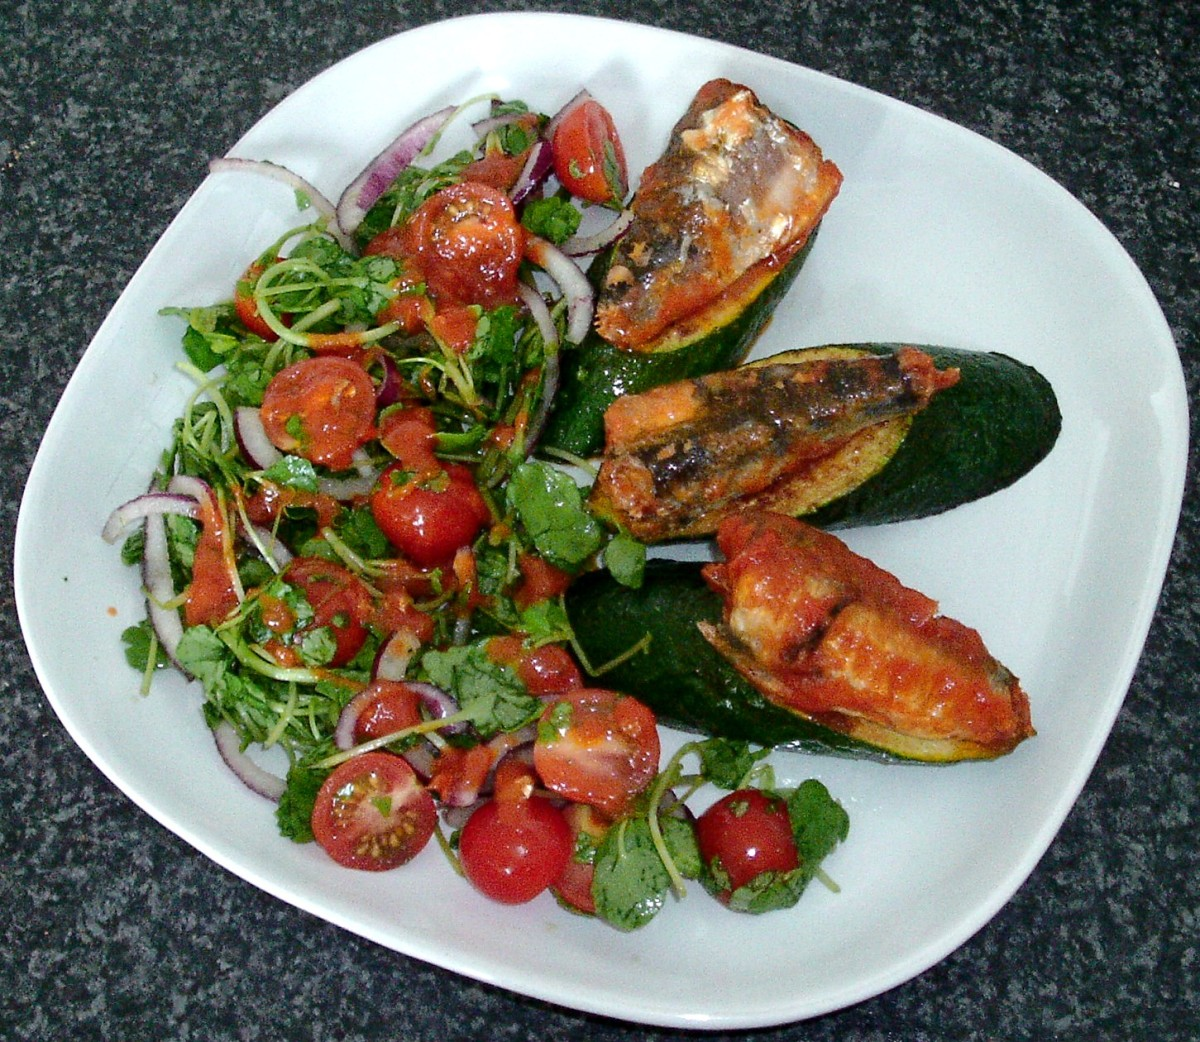 Sardines in tomato sauce are served on pan fried zucchini (courgette) wedges with accompanying salad